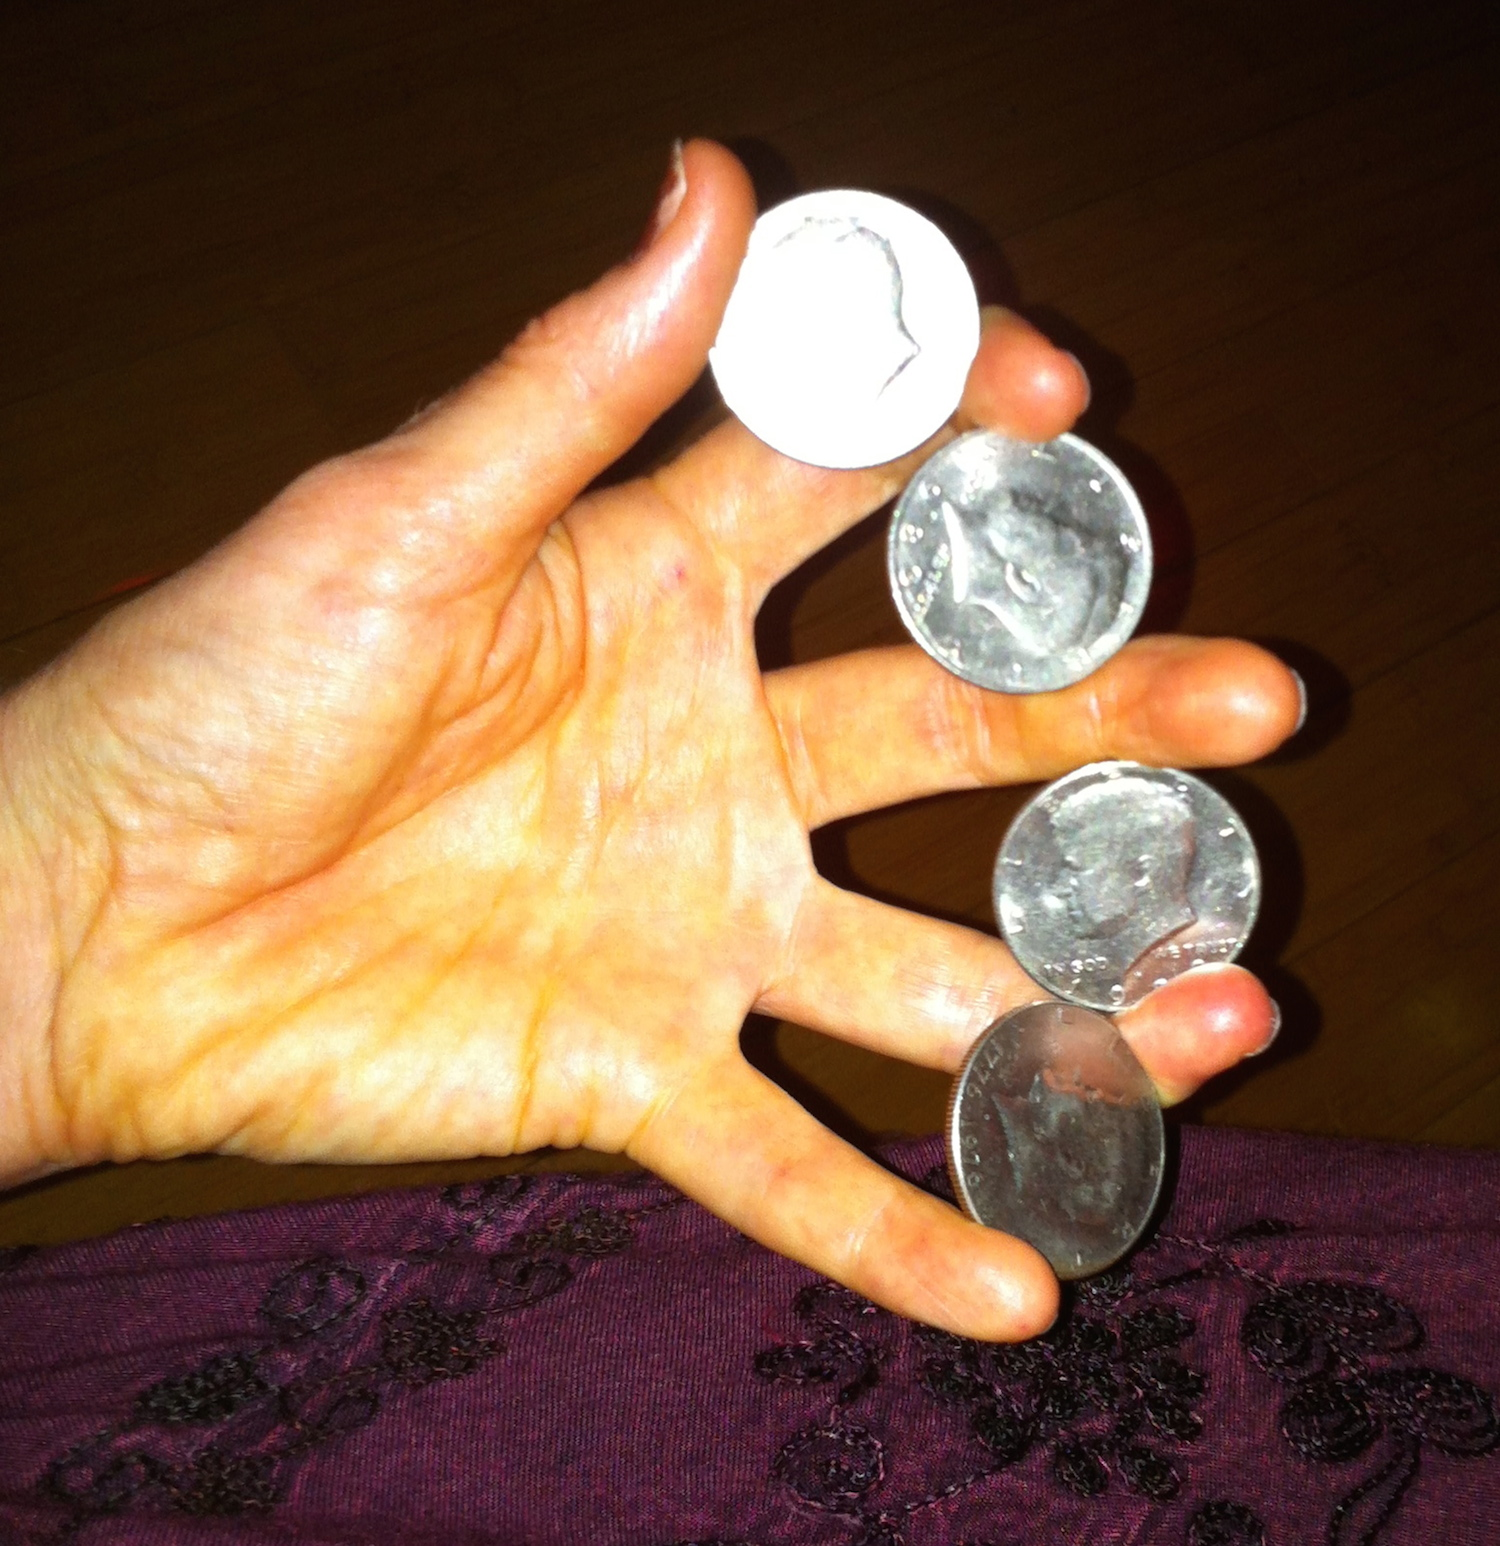 Heather_Rogers_Magician_Four_Coin_Rollout.jpg